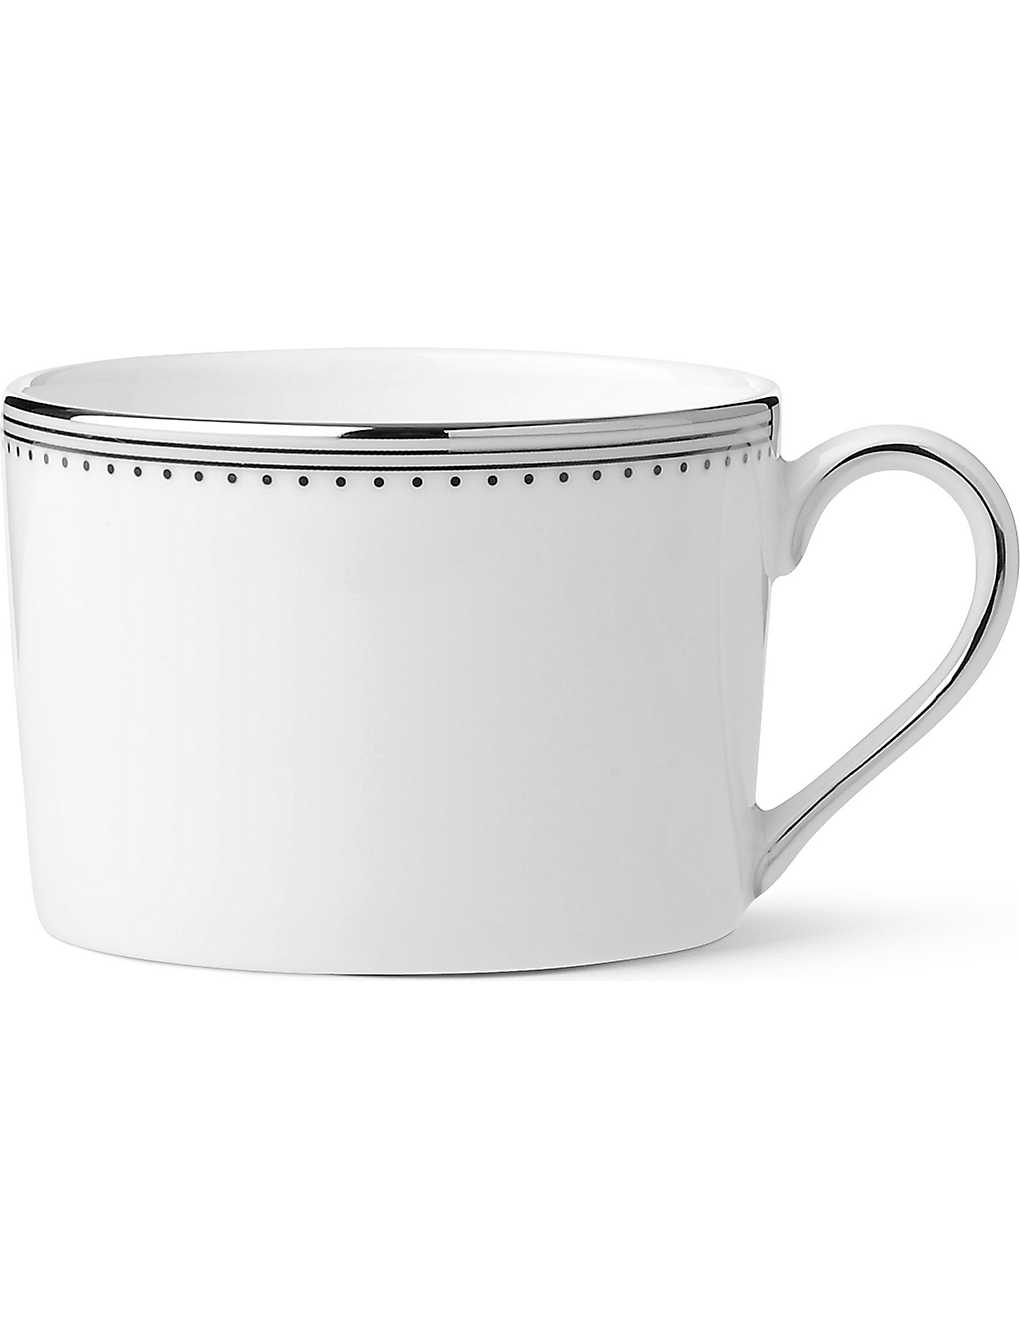 VERA WANG @ WEDGWOOD: Grosgrain teacup